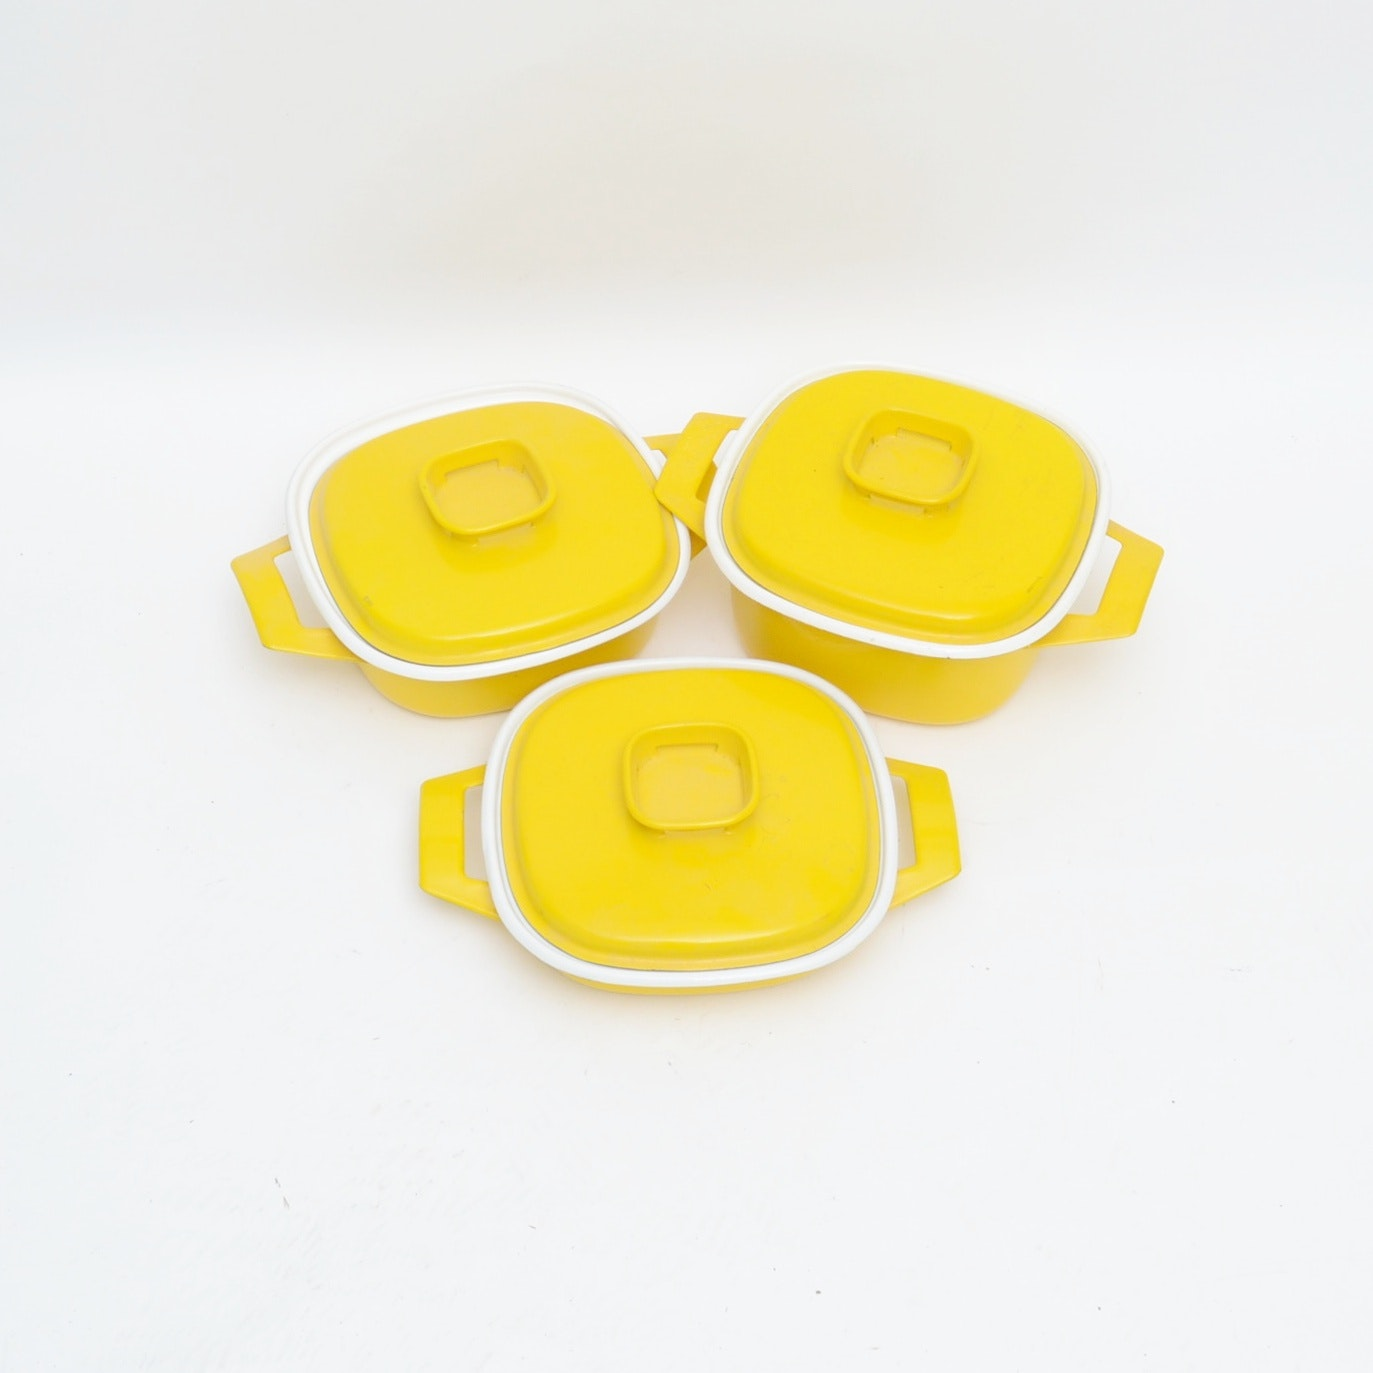 Vintage Enamel over Cast Iron Yellow Cookware